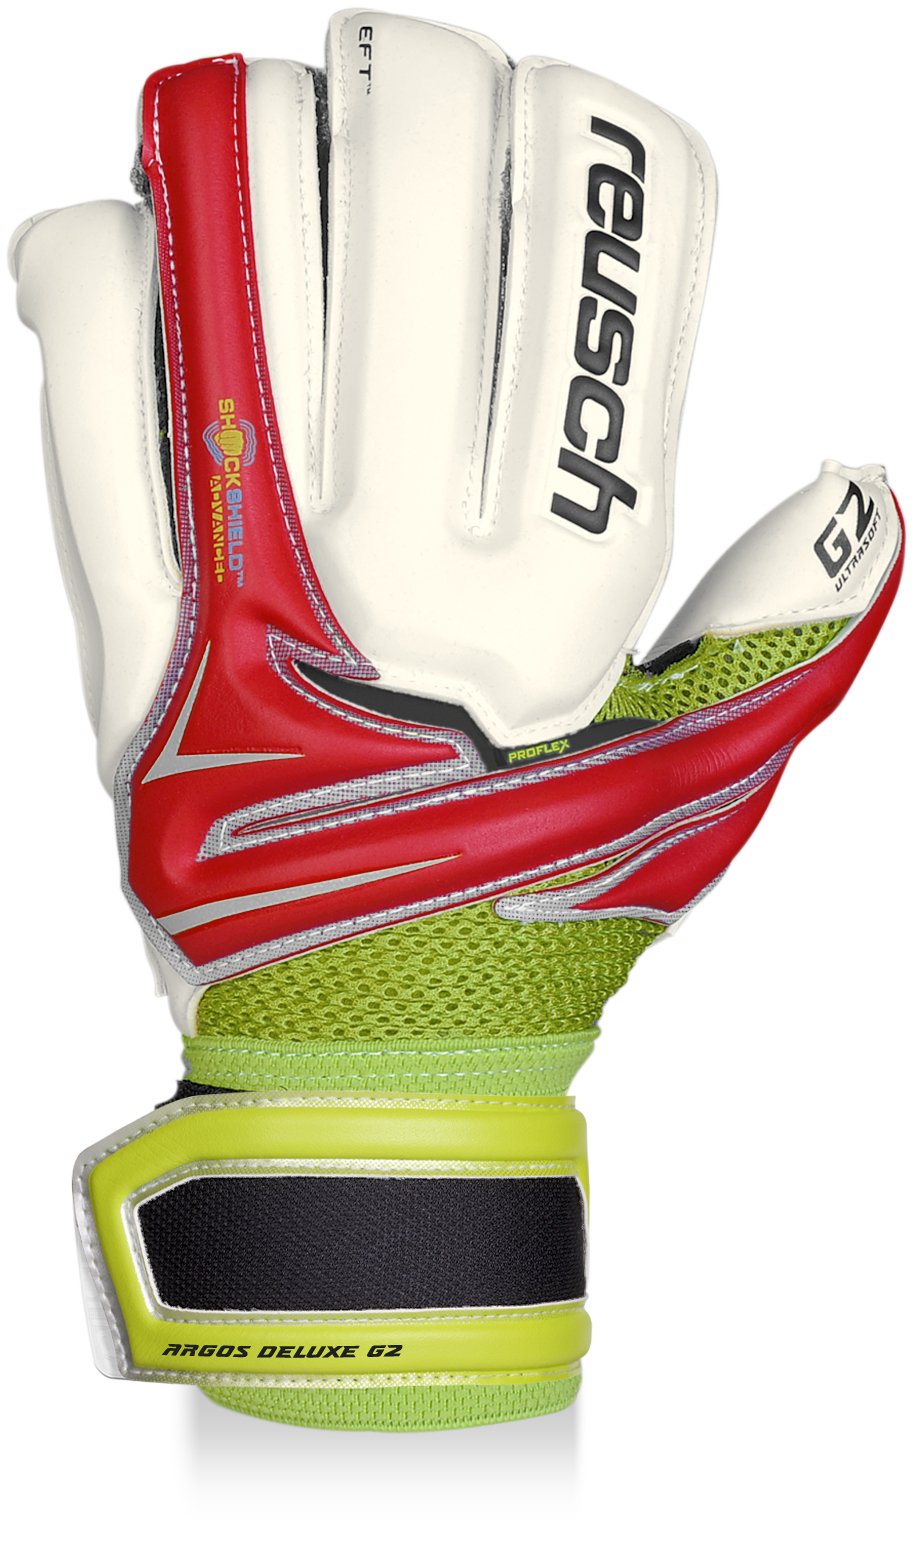 Reusch Argos Deluxe G2 Goalkeeper Gloves (red)